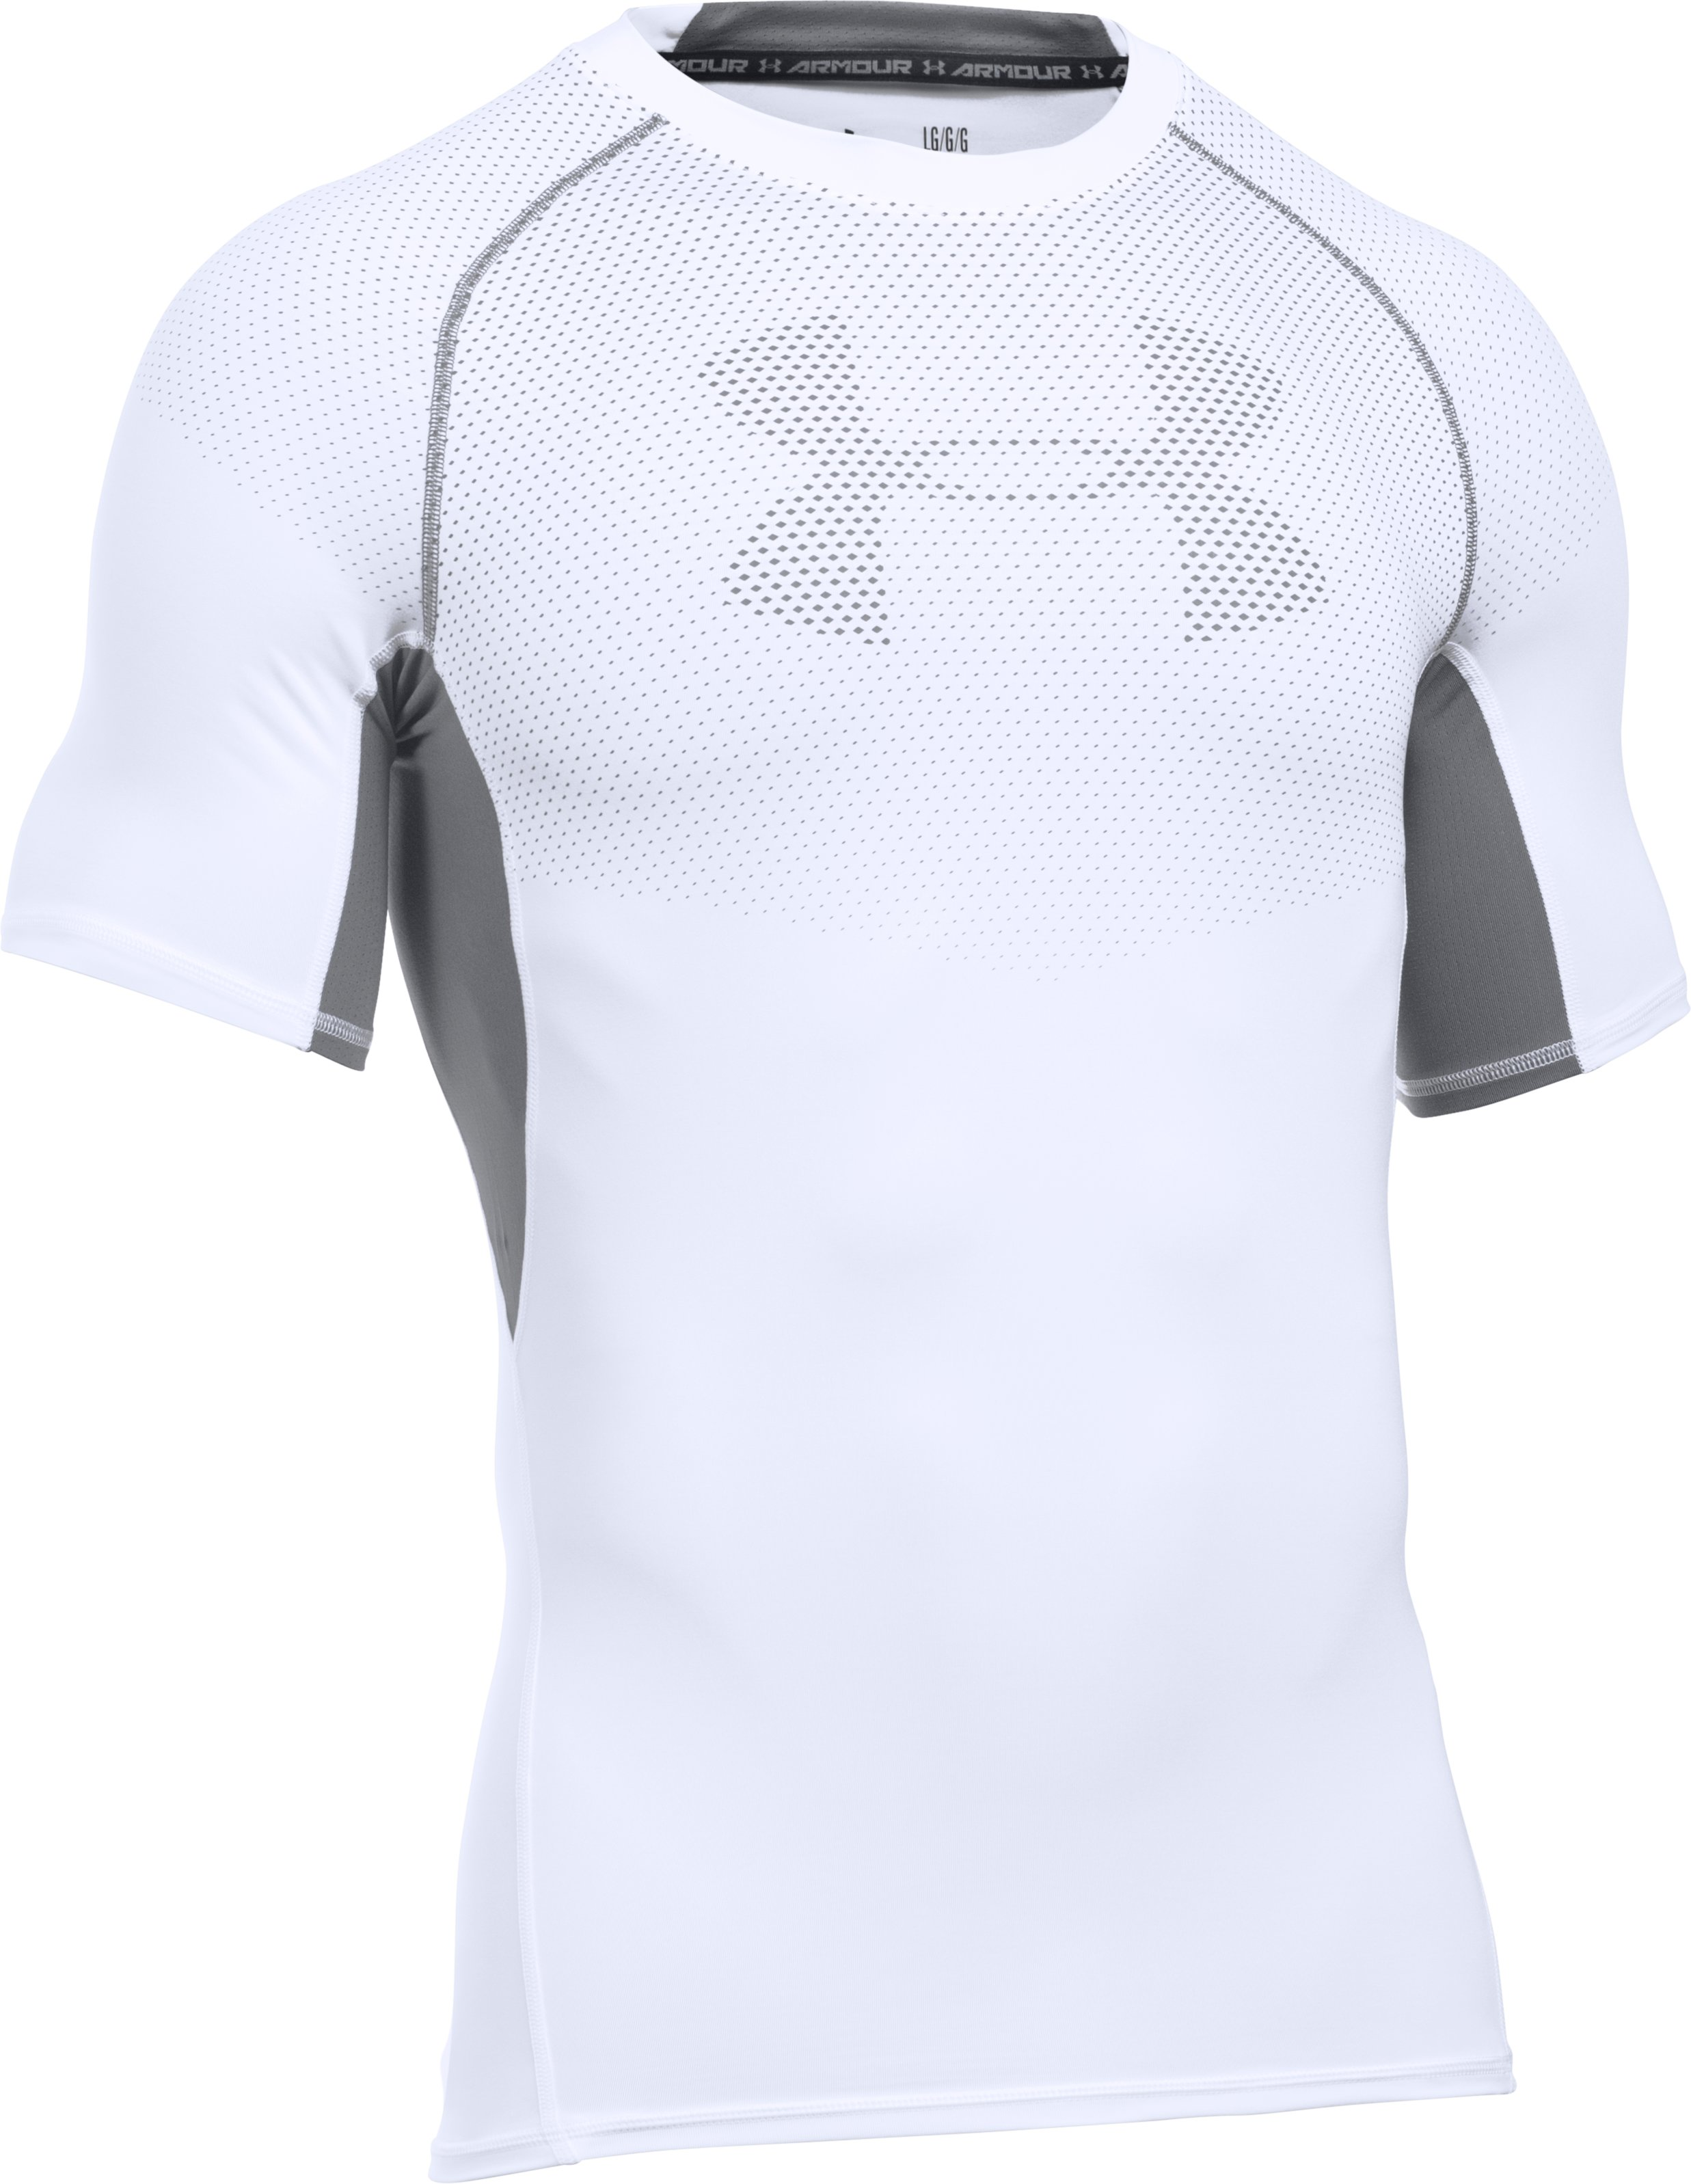 Men's UA HeatGear® Armour Printed Short Sleeve Compression Shirt, White